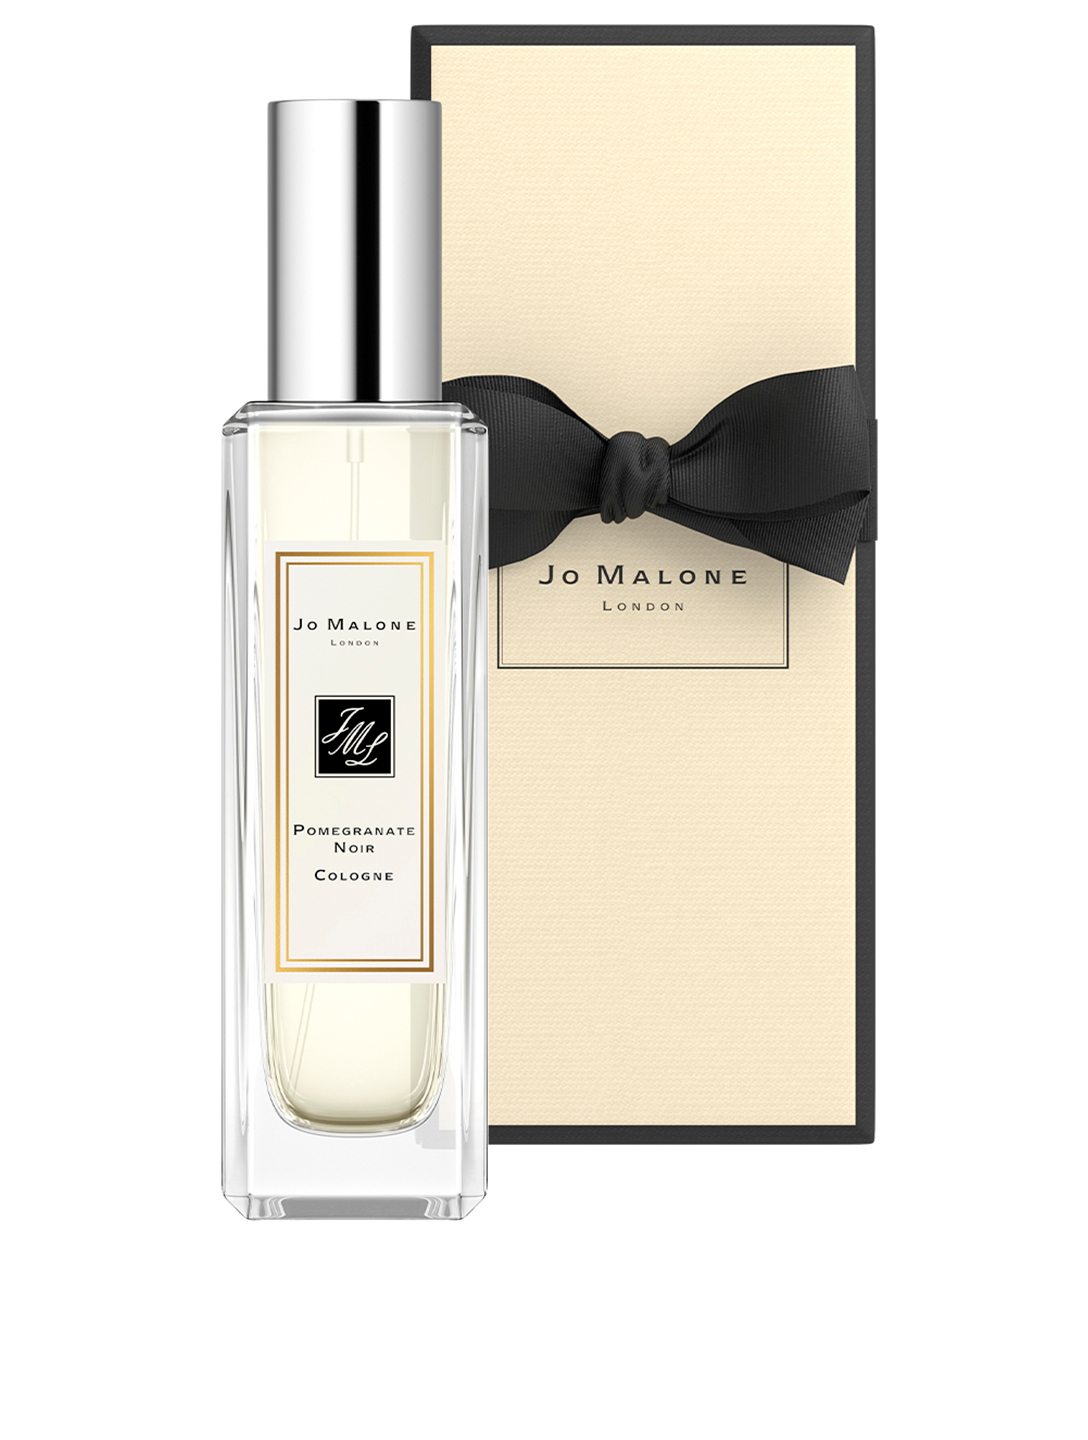 JO MALONE LONDON Pomegranate Noir Cologne Beauty